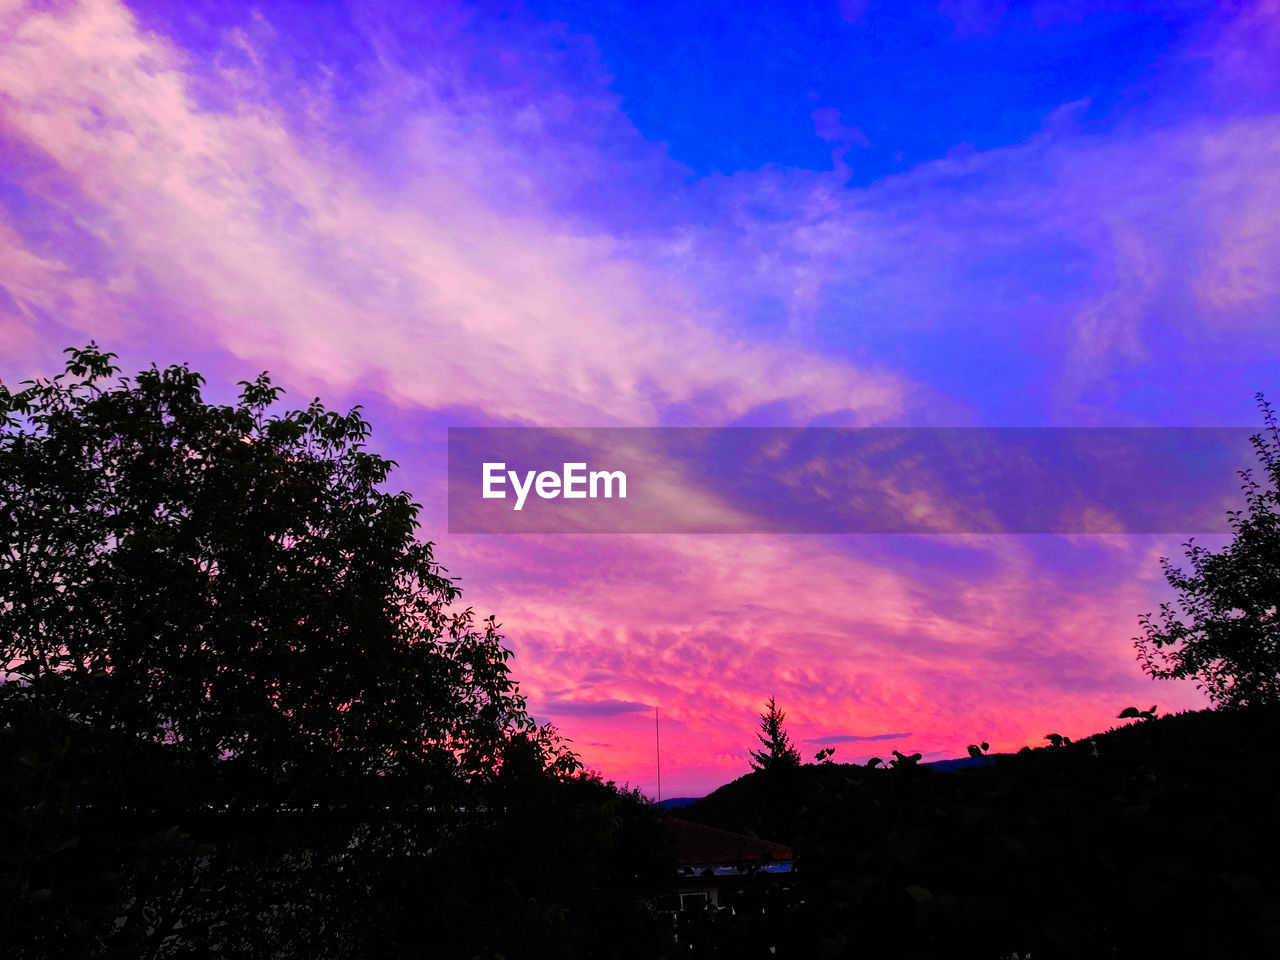 sky, tree, silhouette, cloud - sky, plant, sunset, beauty in nature, scenics - nature, tranquility, nature, tranquil scene, growth, no people, low angle view, pink color, outdoors, idyllic, dramatic sky, purple, dusk